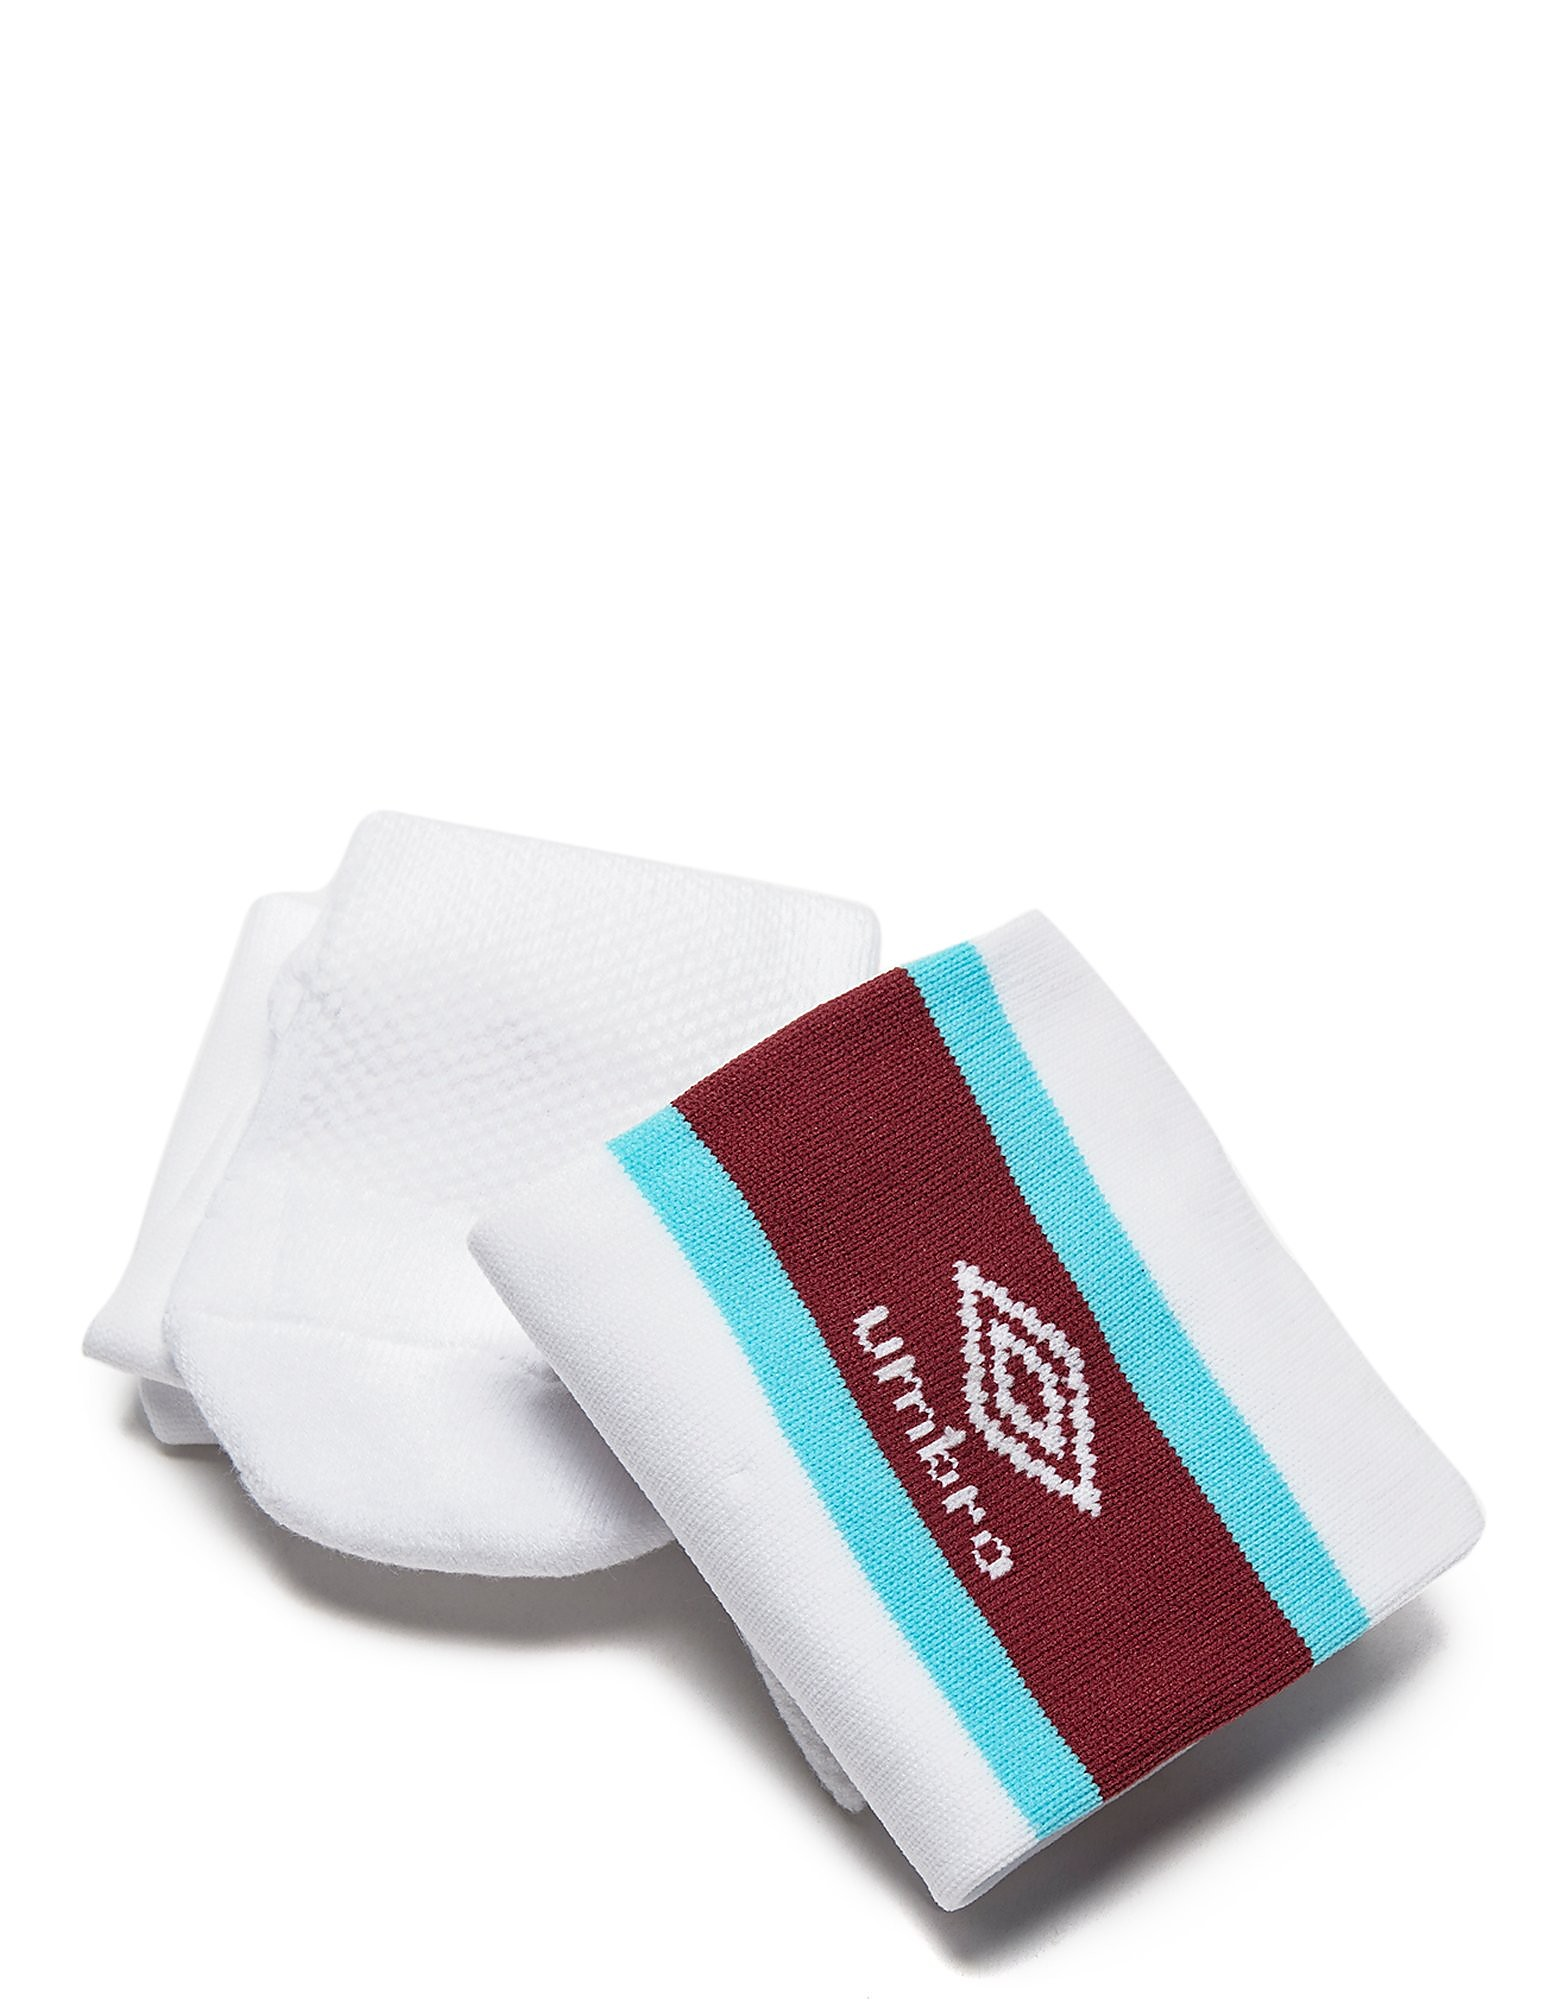 Umbro West Ham United 2016/17 Away Socks Junior